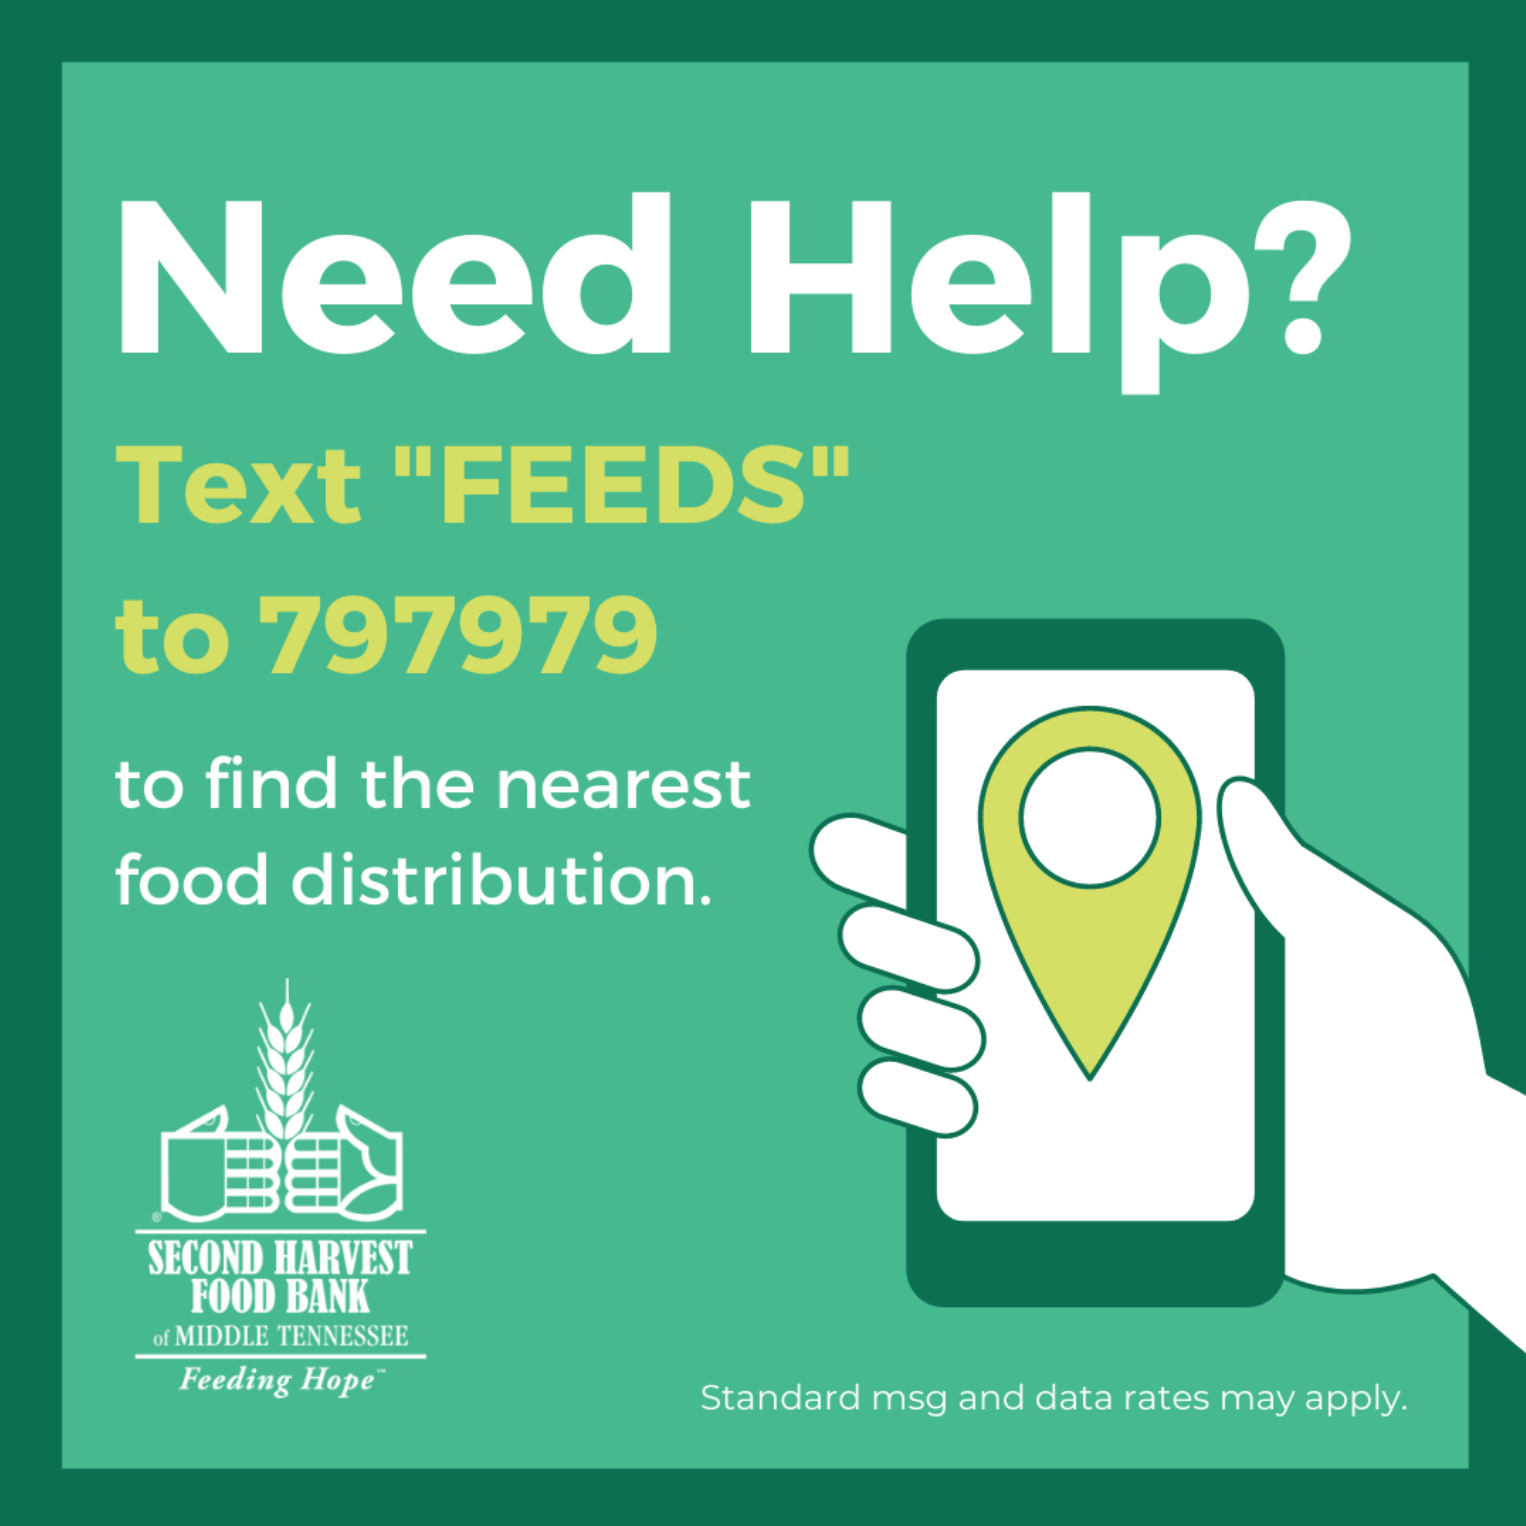 Where to find food bank in Nashville, TN